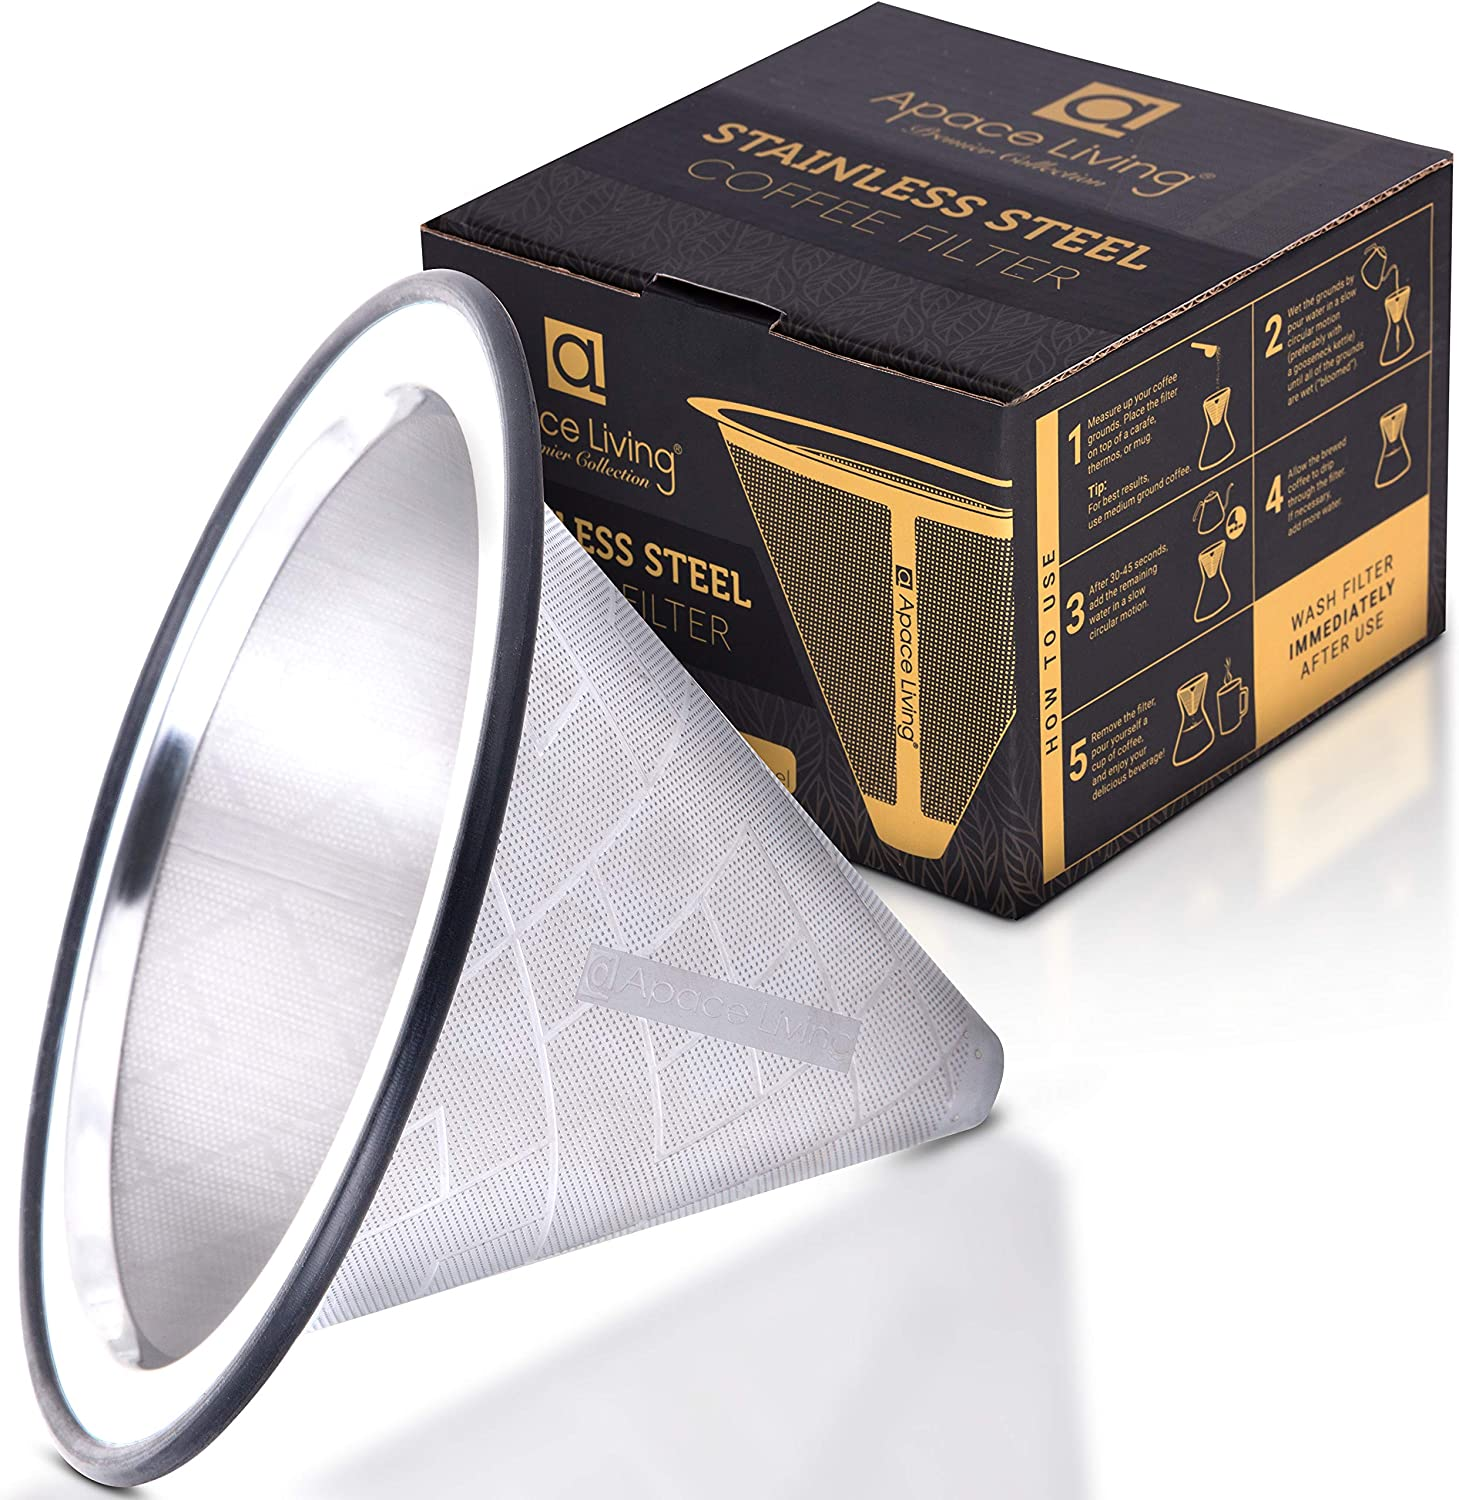 Apace Living Pour Over Coffee Filter - Wide Metal Base Reusable Stainless Steel Coffee Dripper - Perfect for Chemex Hario Bodum & Other Coffee Makers - Paperless Coffee Filter for Sustainable Brewing